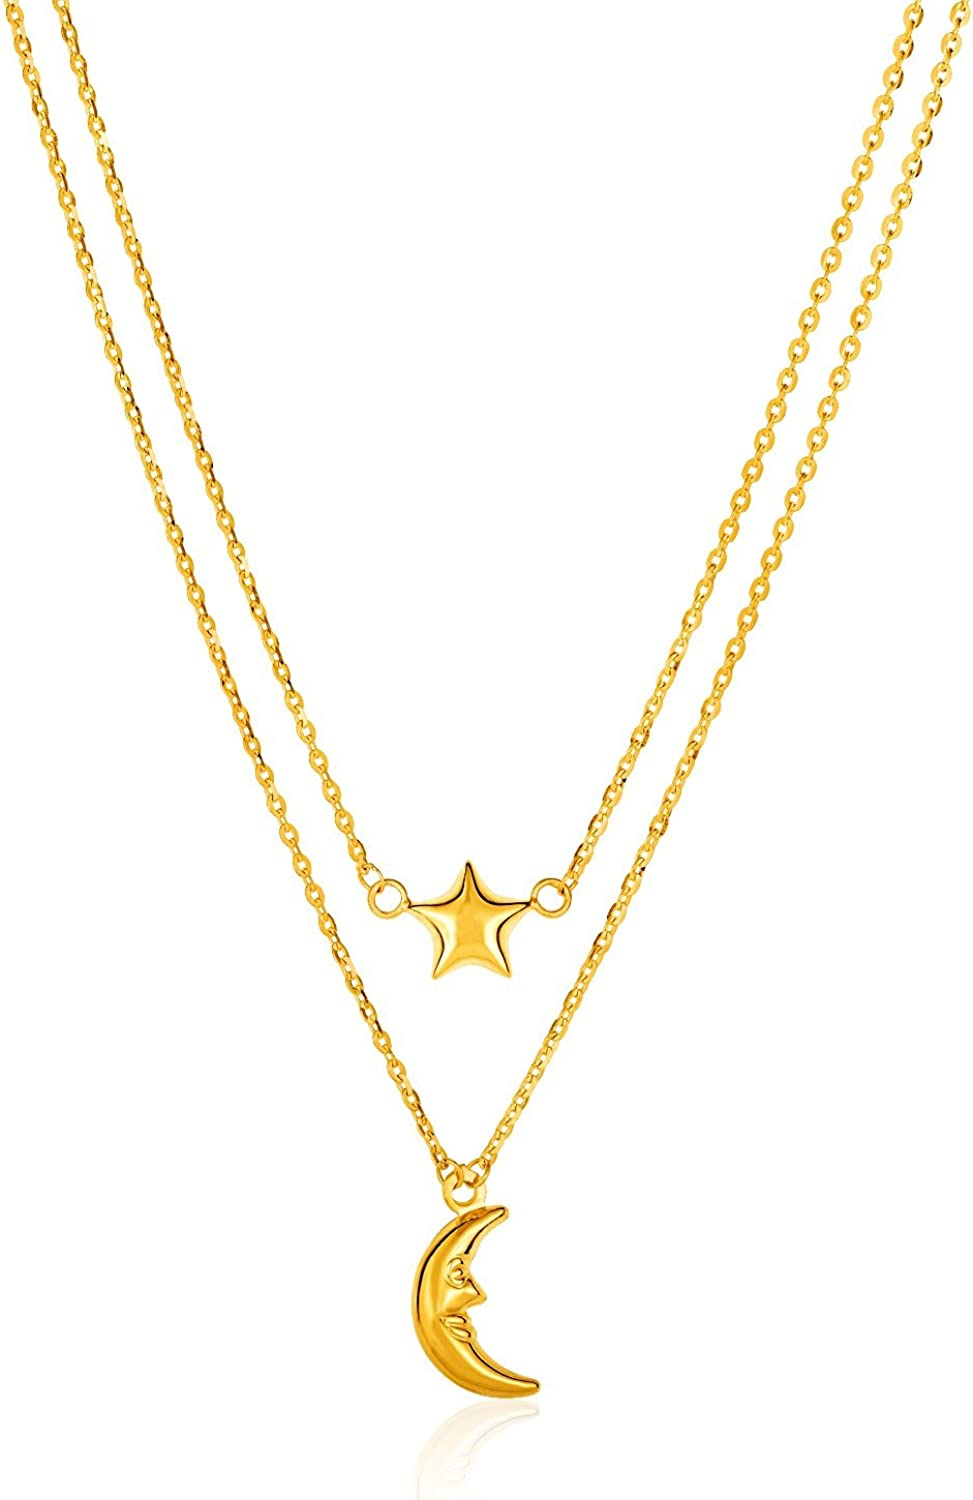 14K Yellow Gold Double-Strand Chain Necklace with Puff Moon and Star